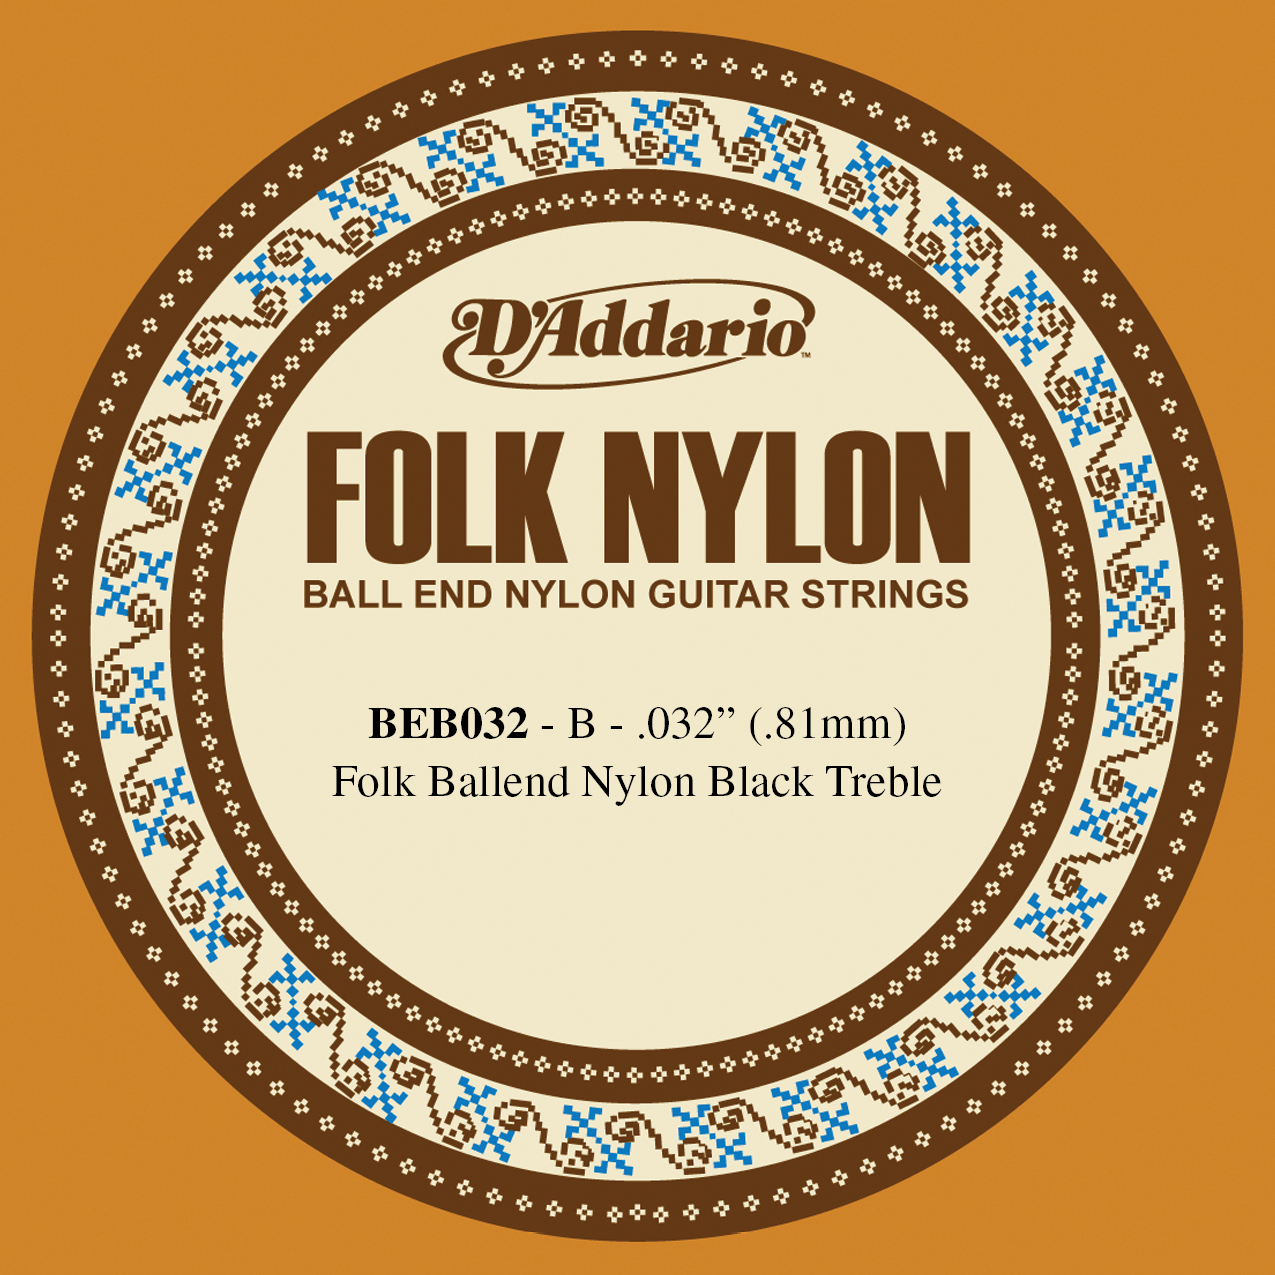 DADD SINGLE FOLK CLR NYL 032 BALL